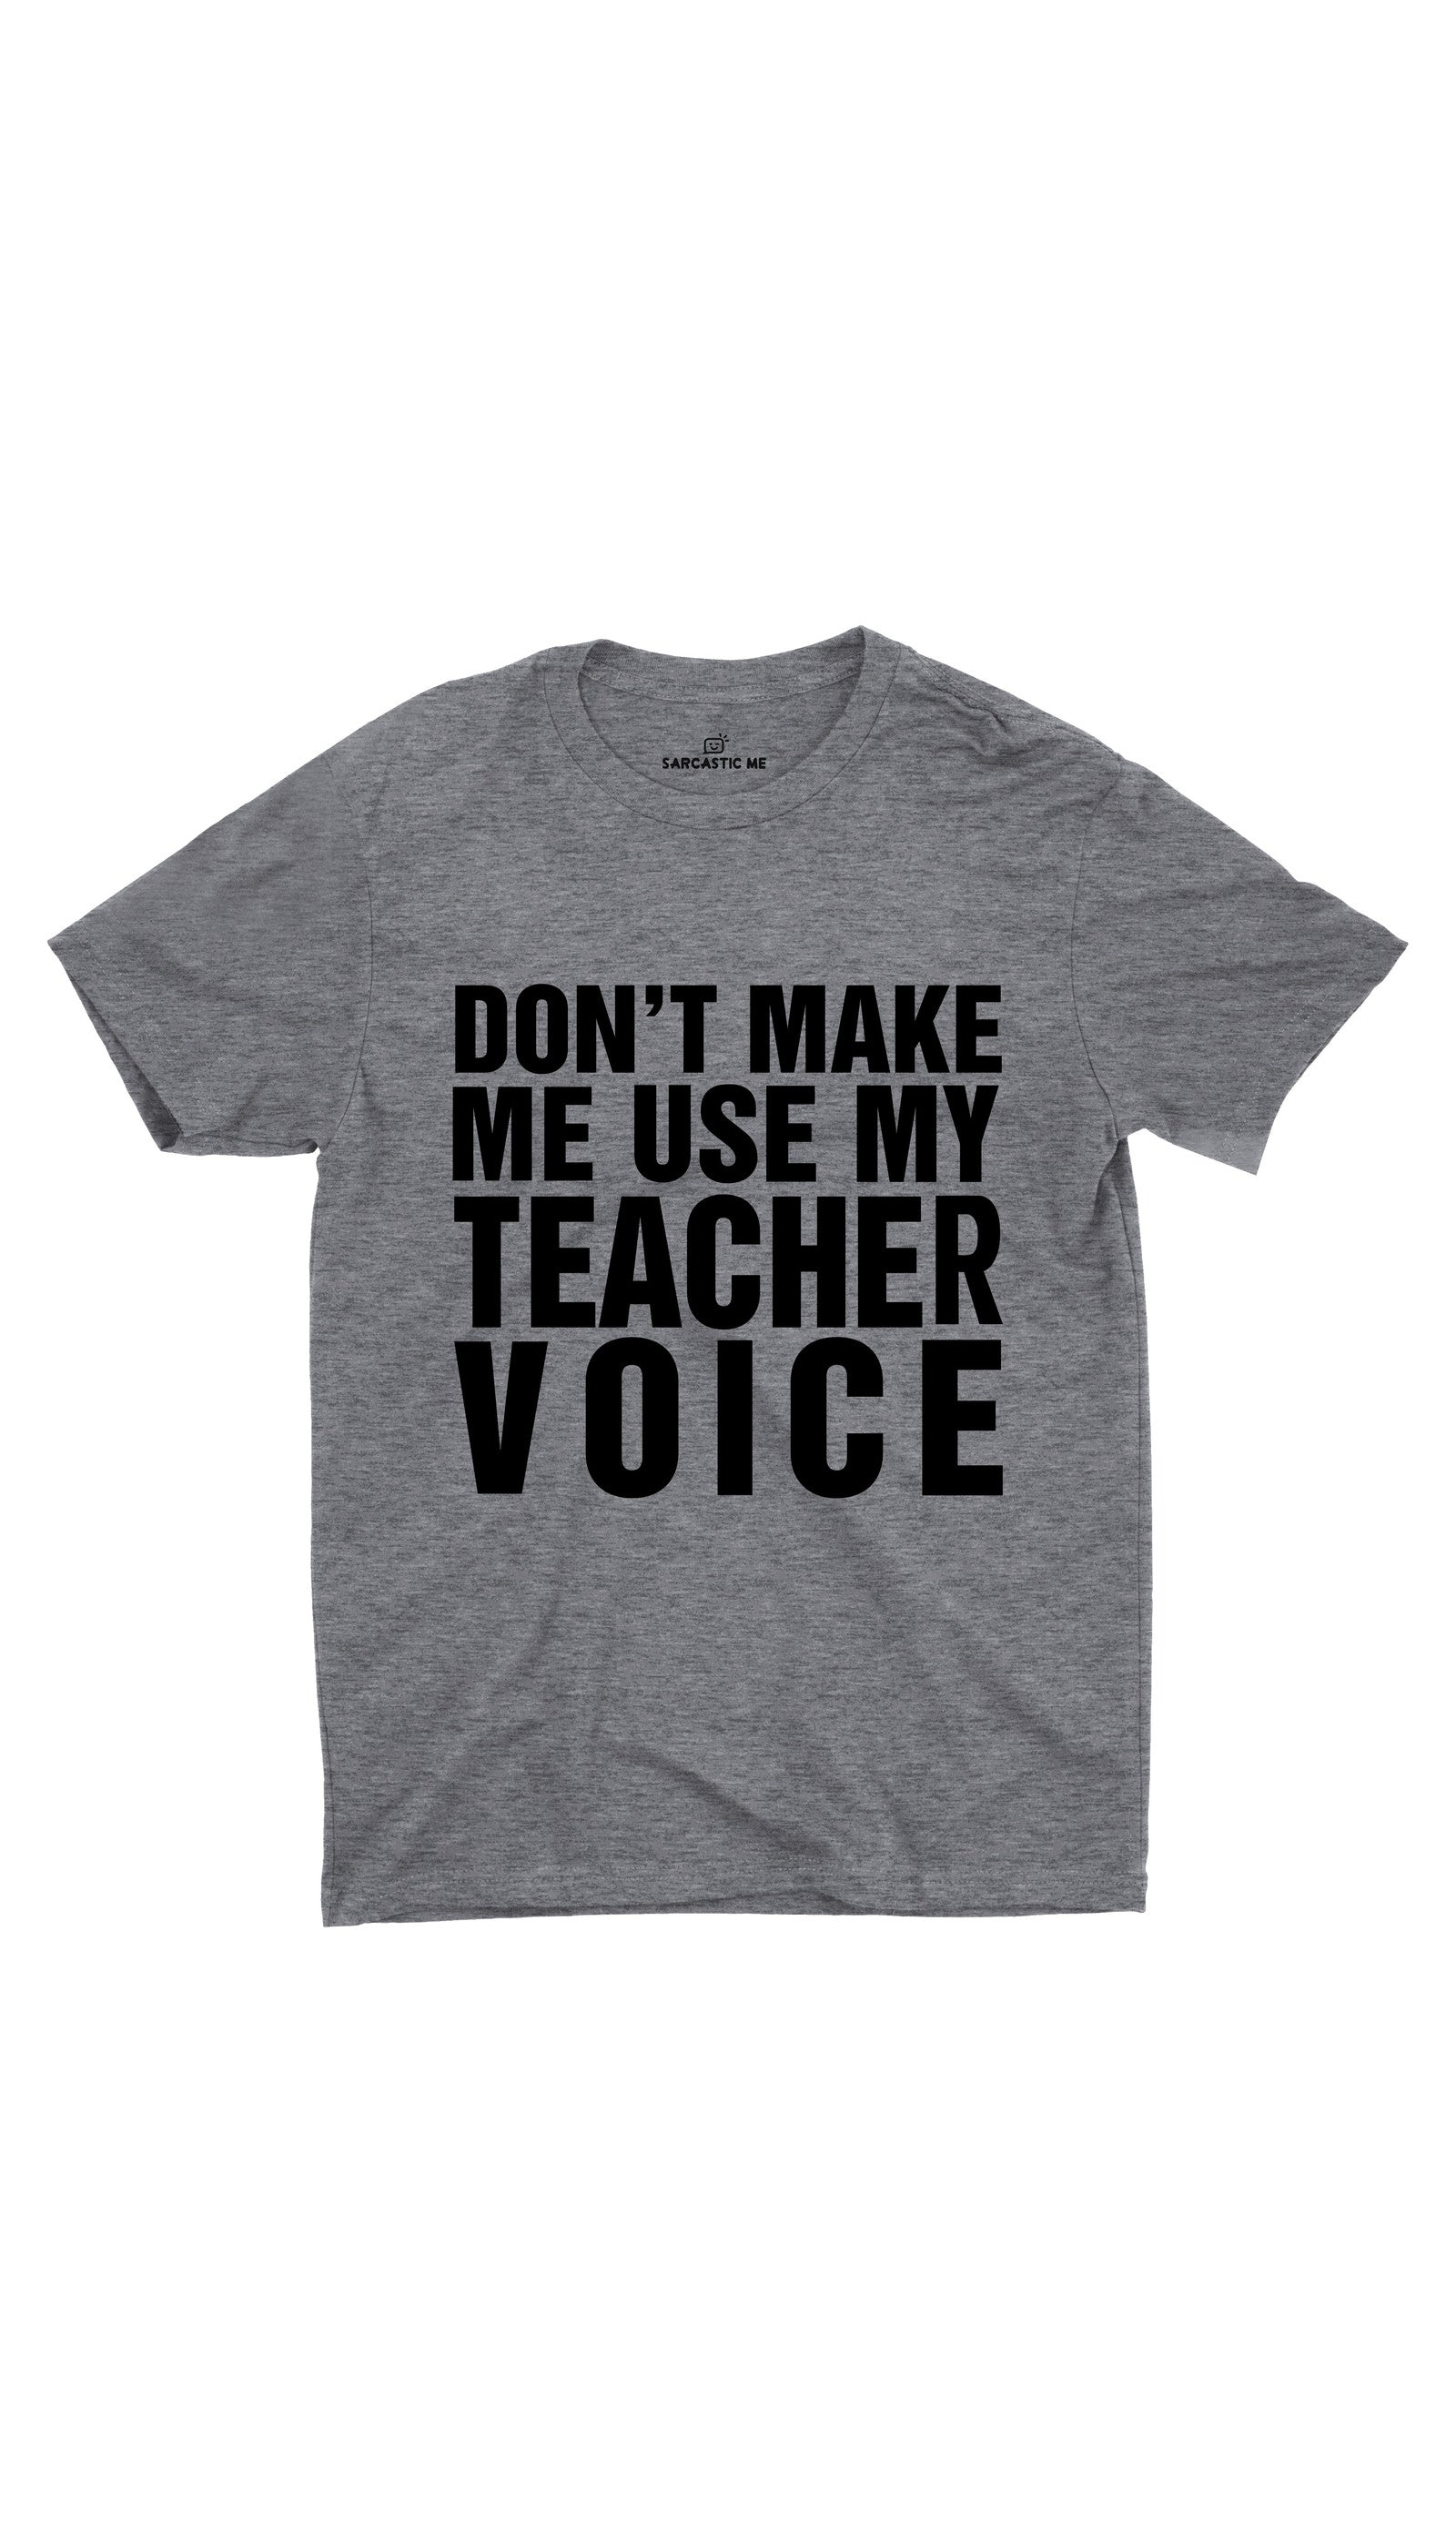 Don't Make Me Use My Teacher Voice Gray Unisex T-shirt | Sarcastic ME